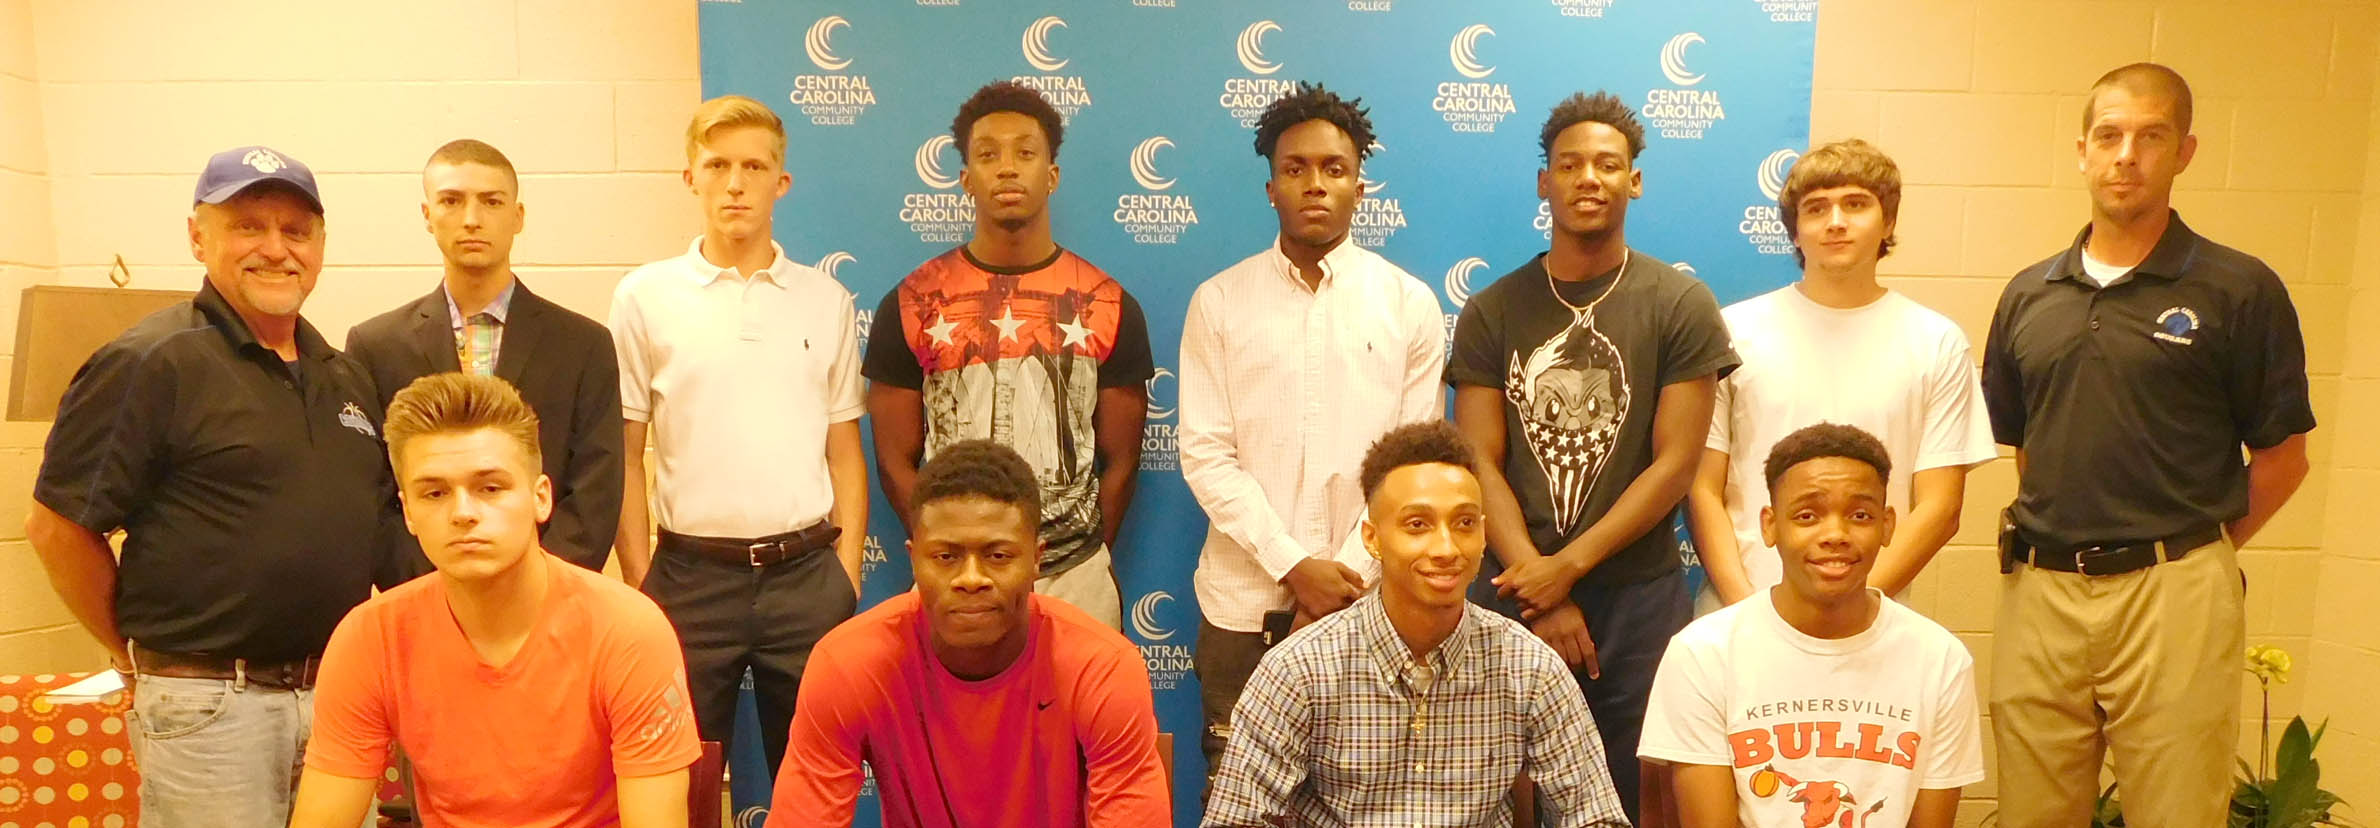 Click to enlarge,  Eleven student-athletes have signed to join the Central Carolina Community College men's basketball program for the 2017-2018 season. Pictured are, left to right: front row, Caleb Thomas, Jeremiah Tolbert, Michael Brown, and Daniel Matangira; back row, CCCC Head Coach Doug Connor, Tyler Toro, Trey North, Chris George, Toby Brown Jr., Montel Moore, Cameron Wilson, and CCCC Assistant Coach Brad McDougald. Not pictured is Chrishawn Lindsey.